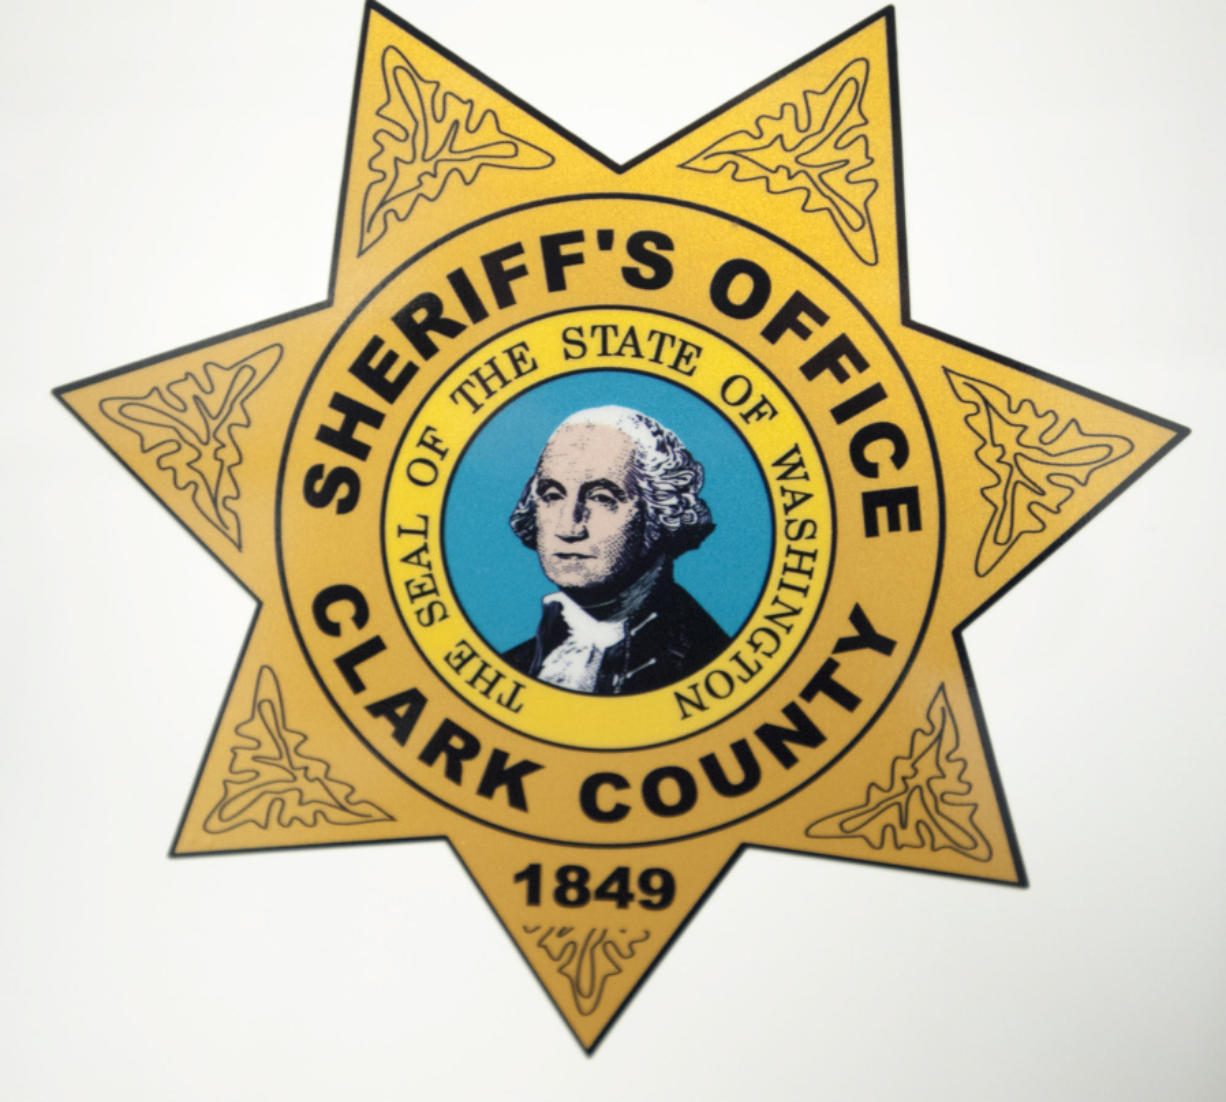 The Clark County Sheriff's Office changed the decals on patrol vehicles in 2015.